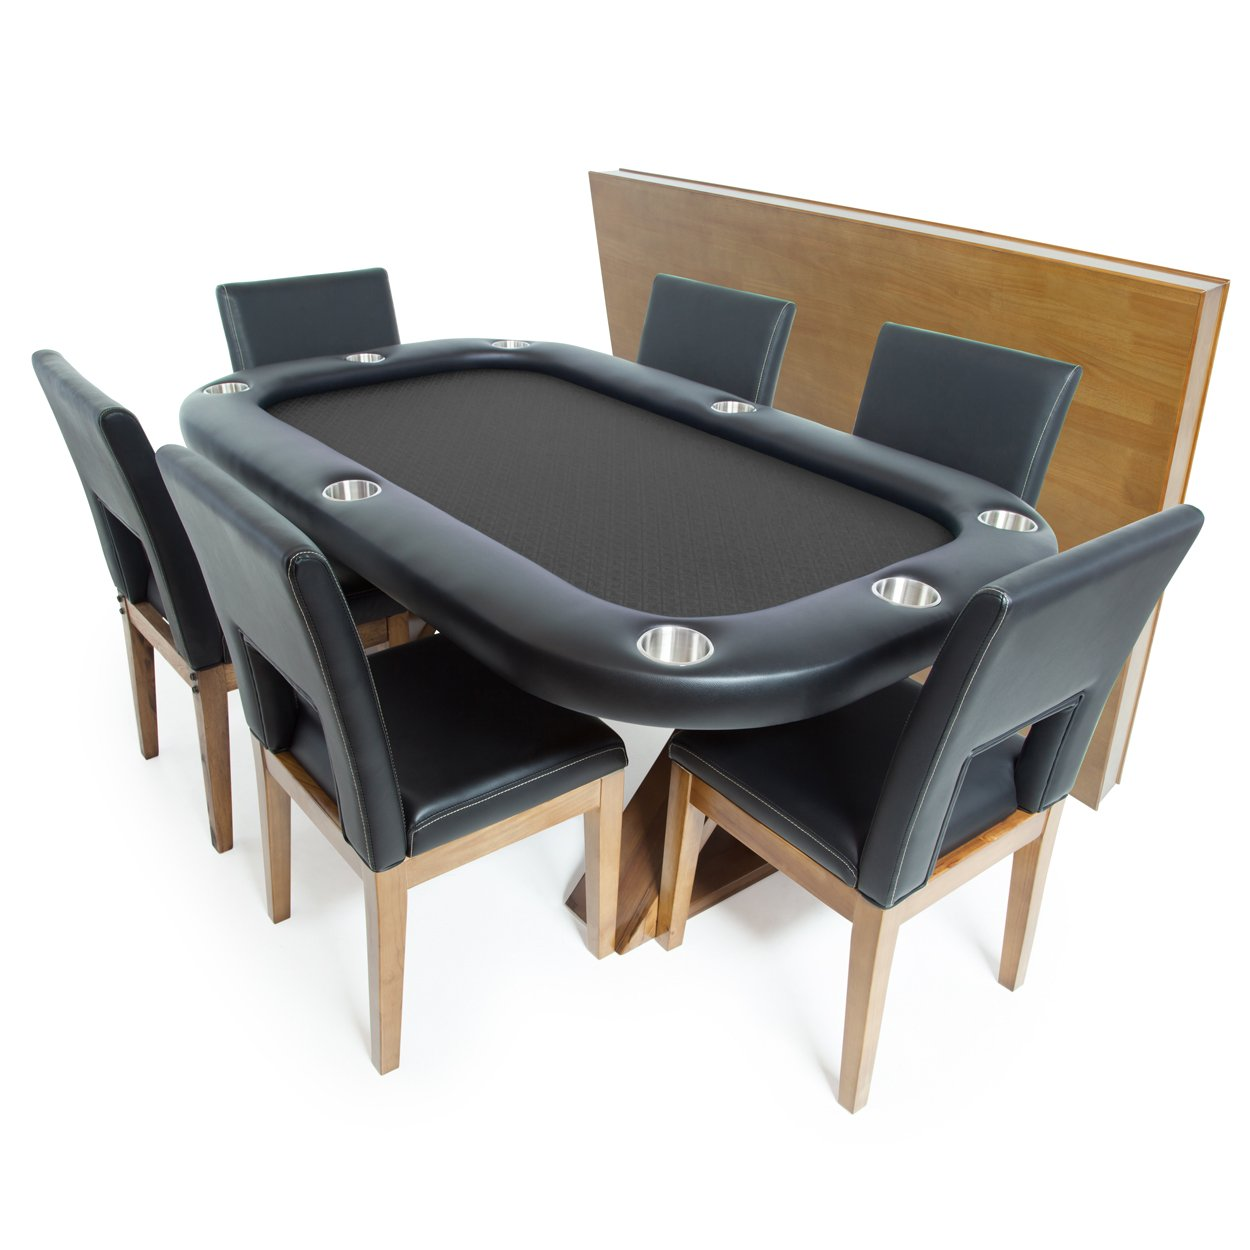 BBO Poker Helmsley Poker Table for 8 Players with Black Speed Cloth Playing Surface, 72 x 46-Inch, Includes Matching Dining Top with 6 Dining Chairs by BBO Poker